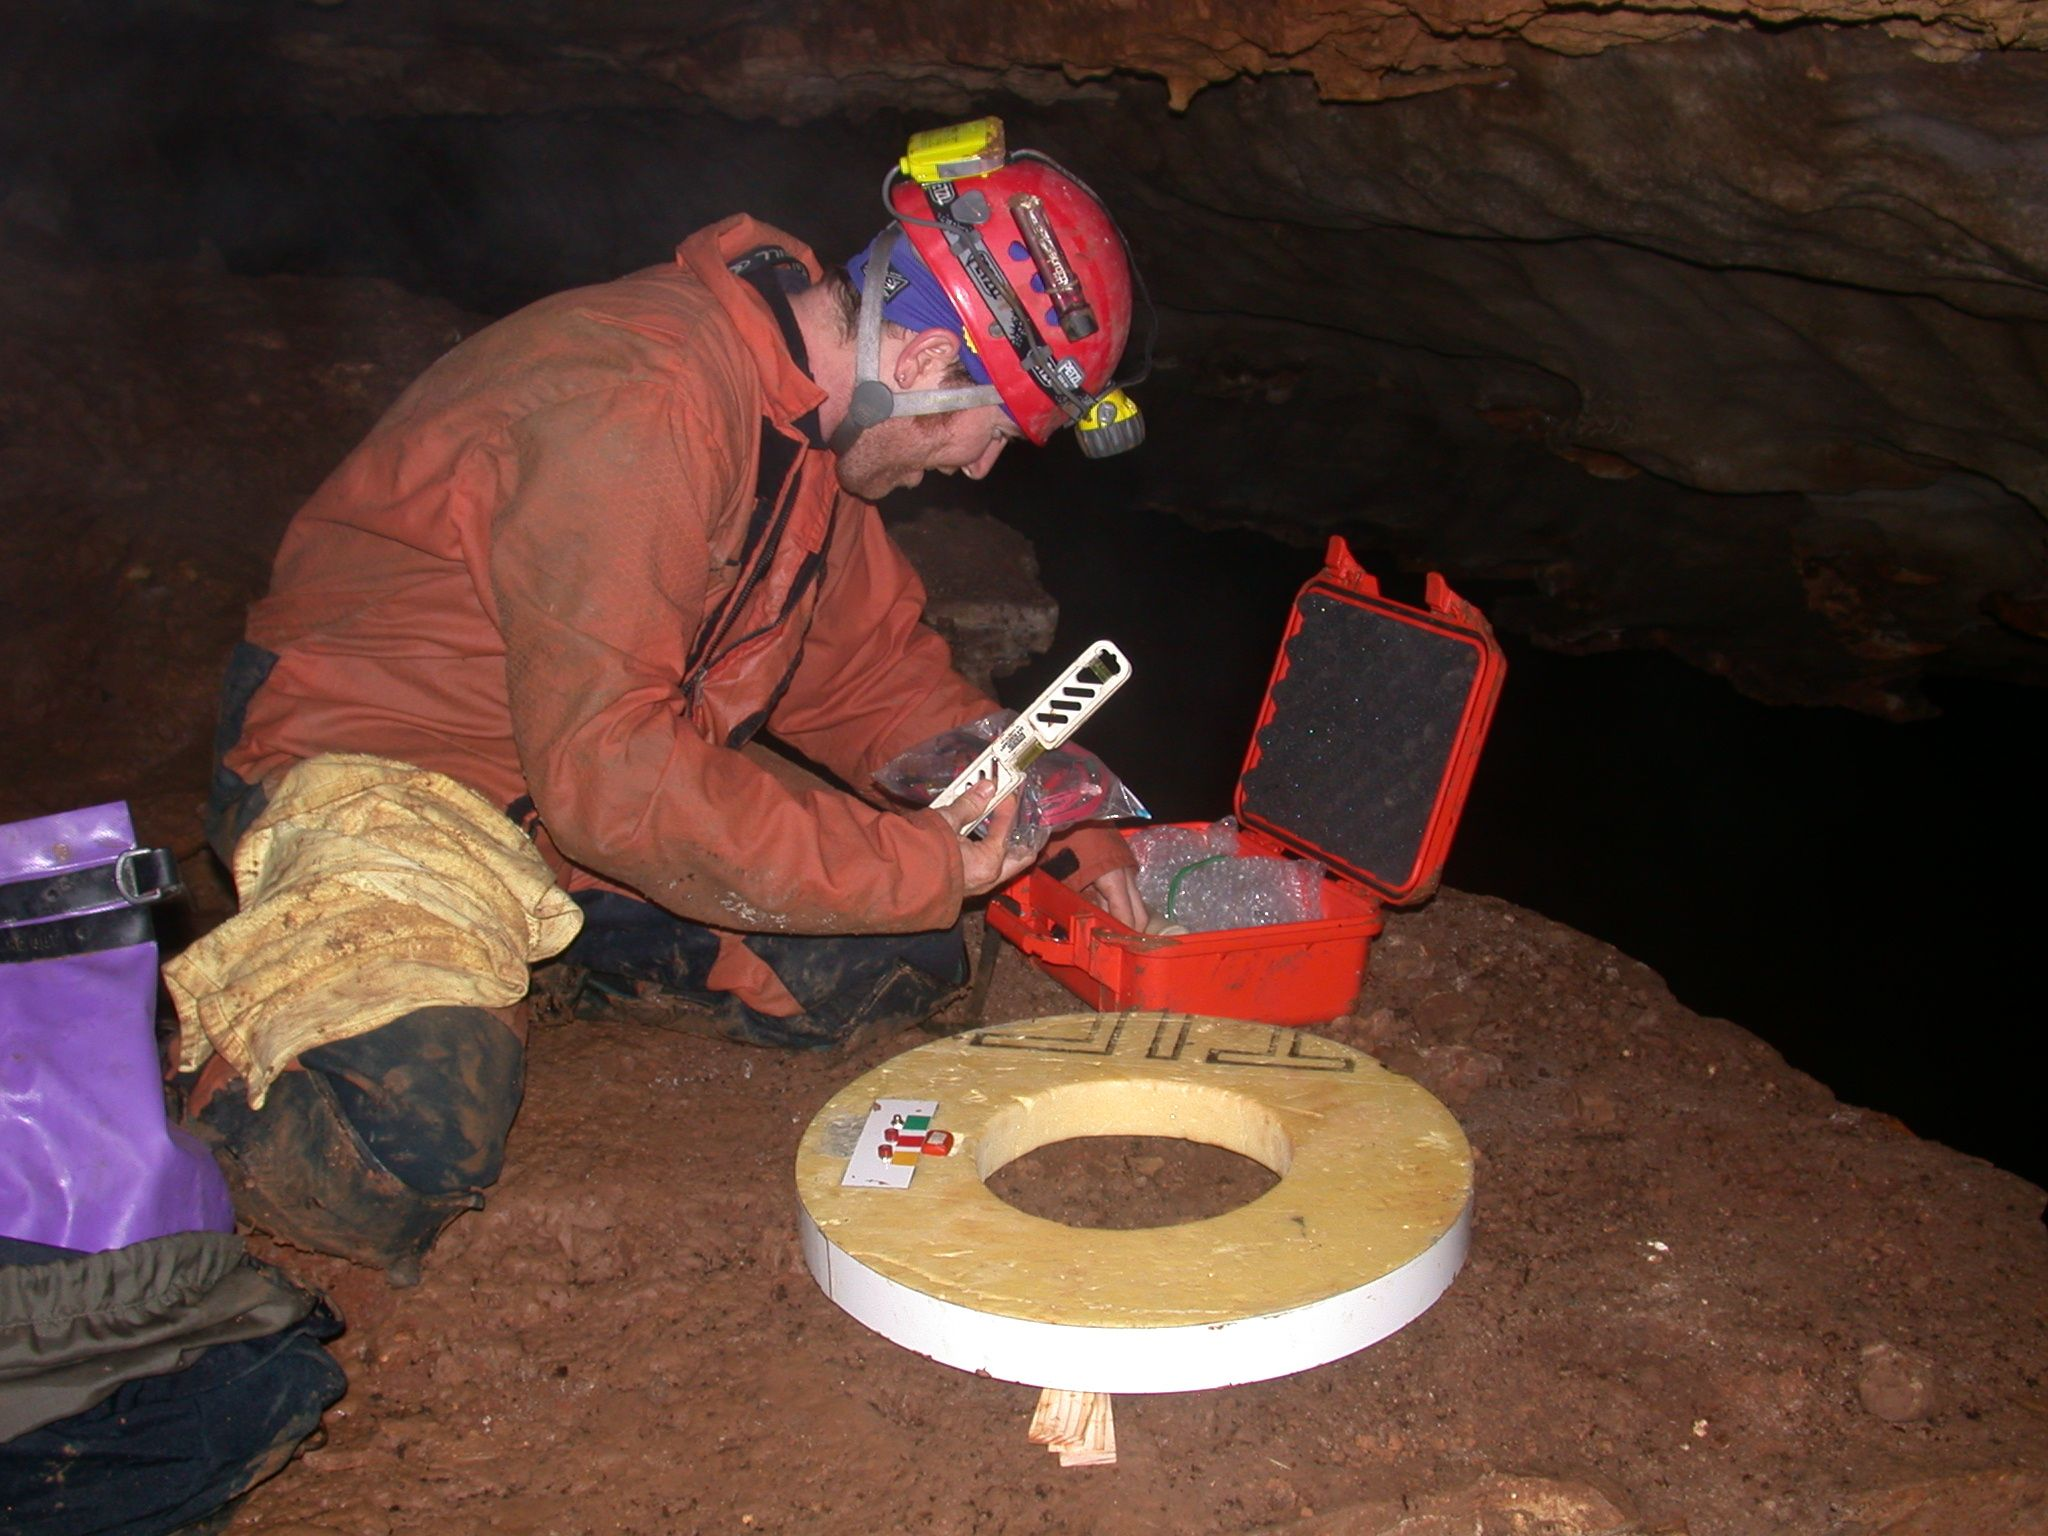 Researcher recording audio inside the cave.